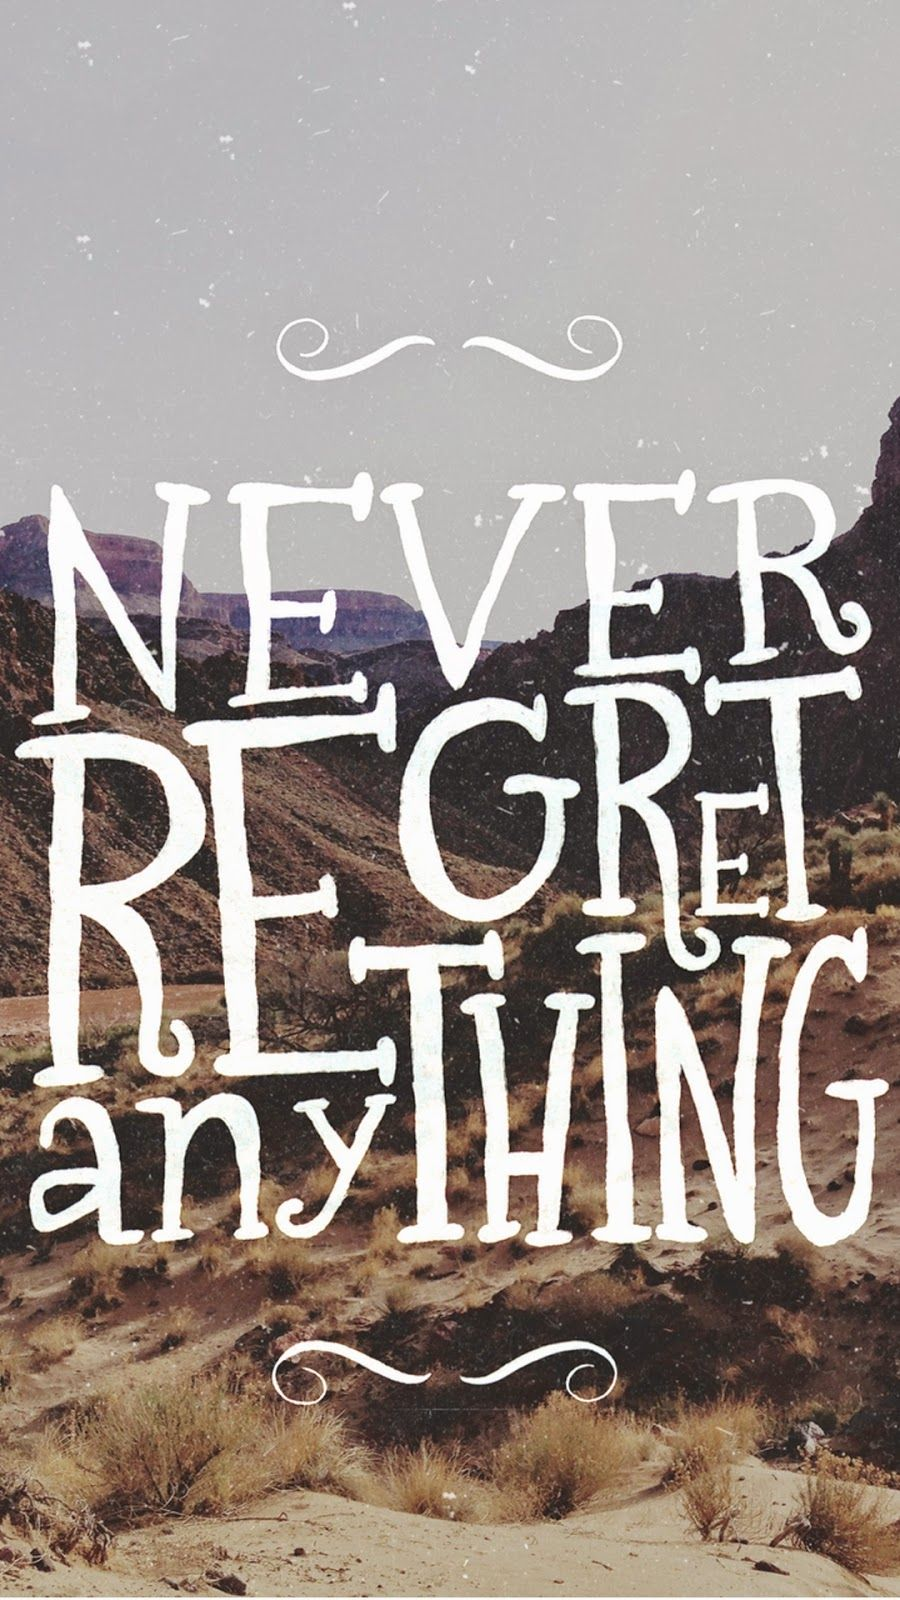 Hd wallpaper quotes for iphone - Never Regret Anything Find More Super Cute Wallpapers For Your Iphone Android